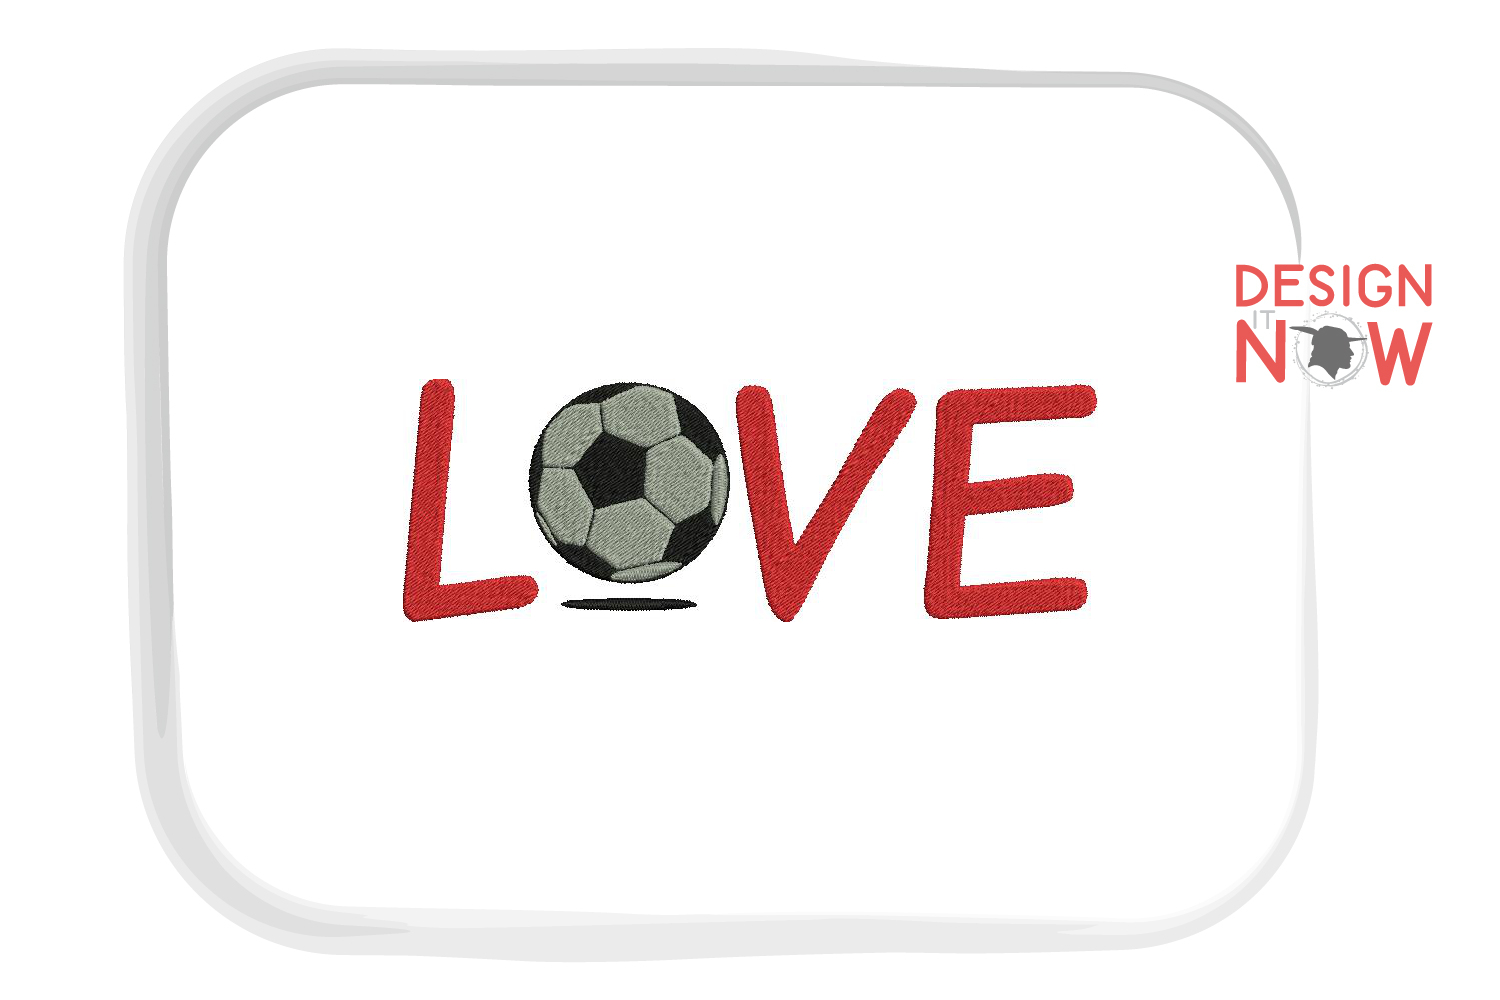 Soccer Ball Embroidery Design, Sport Embroidery Pattern example image 1